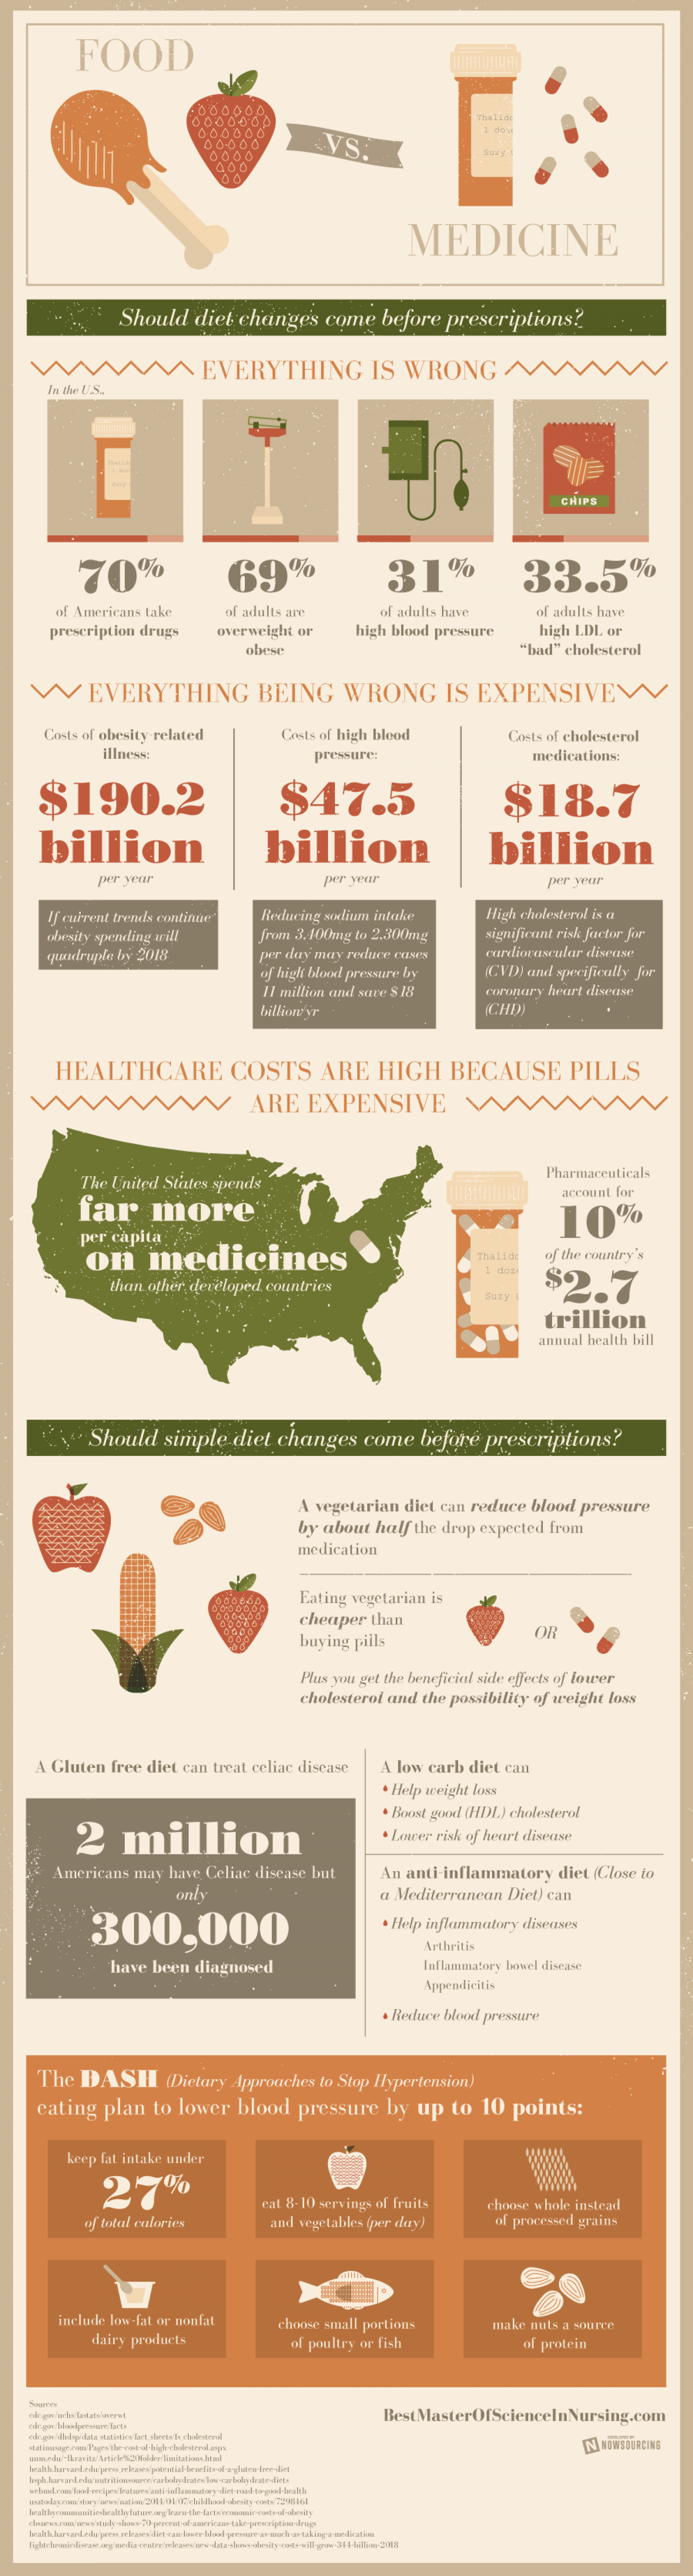 Food vs. Medicine Infographic